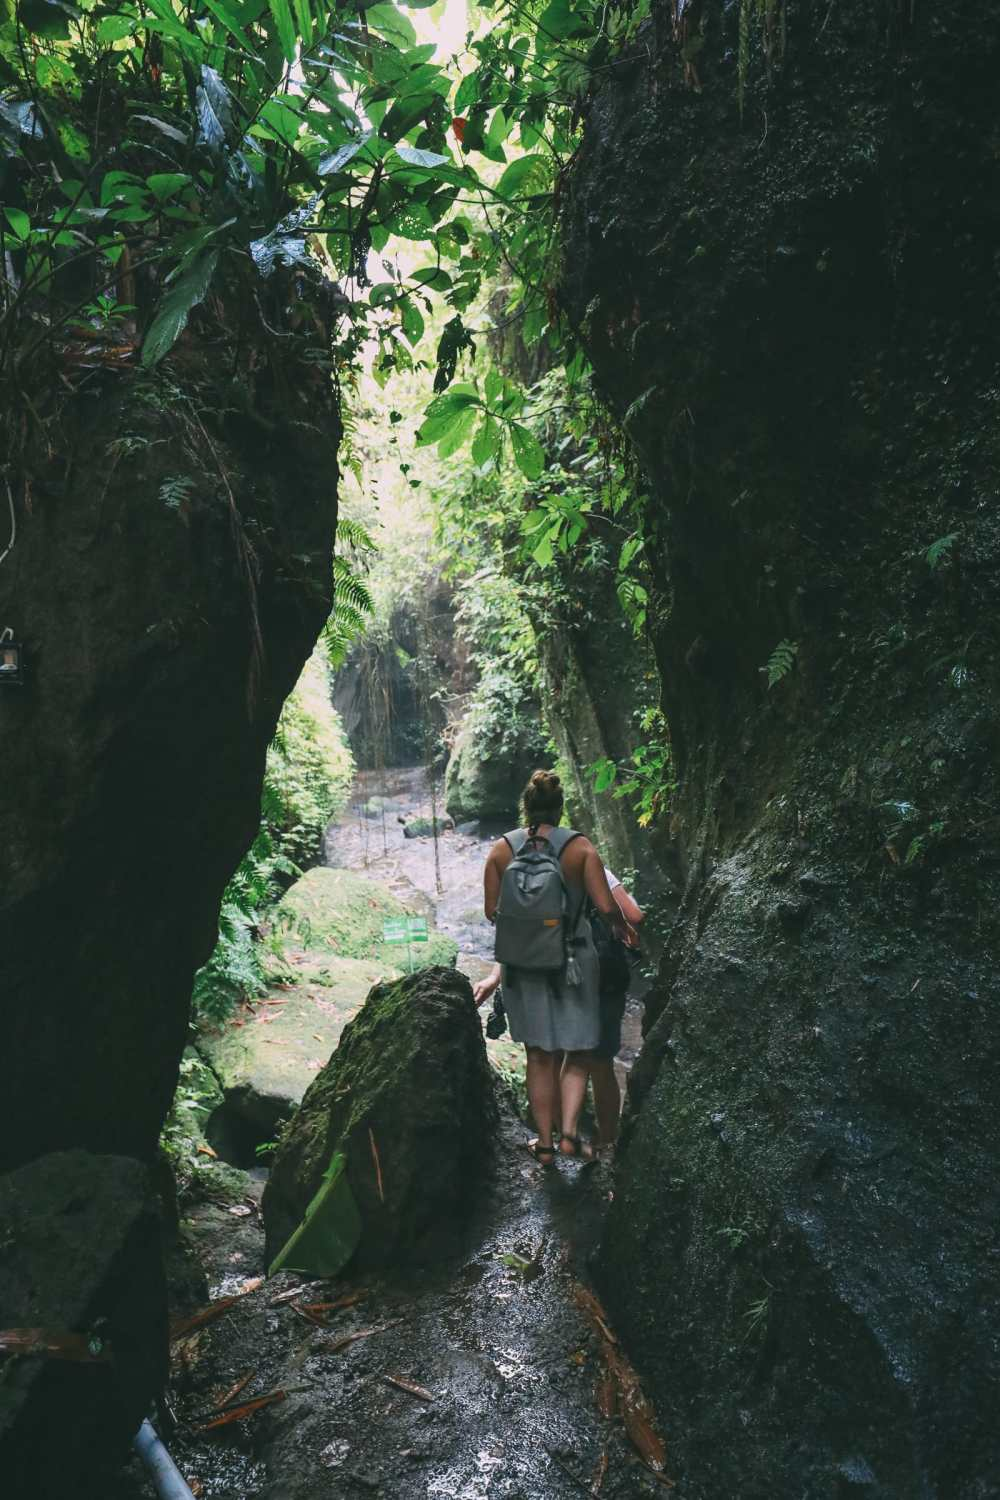 Finding A Secret Waterfall in Bali, Tirta Empul Temple And Mount Batur Volcano (35)